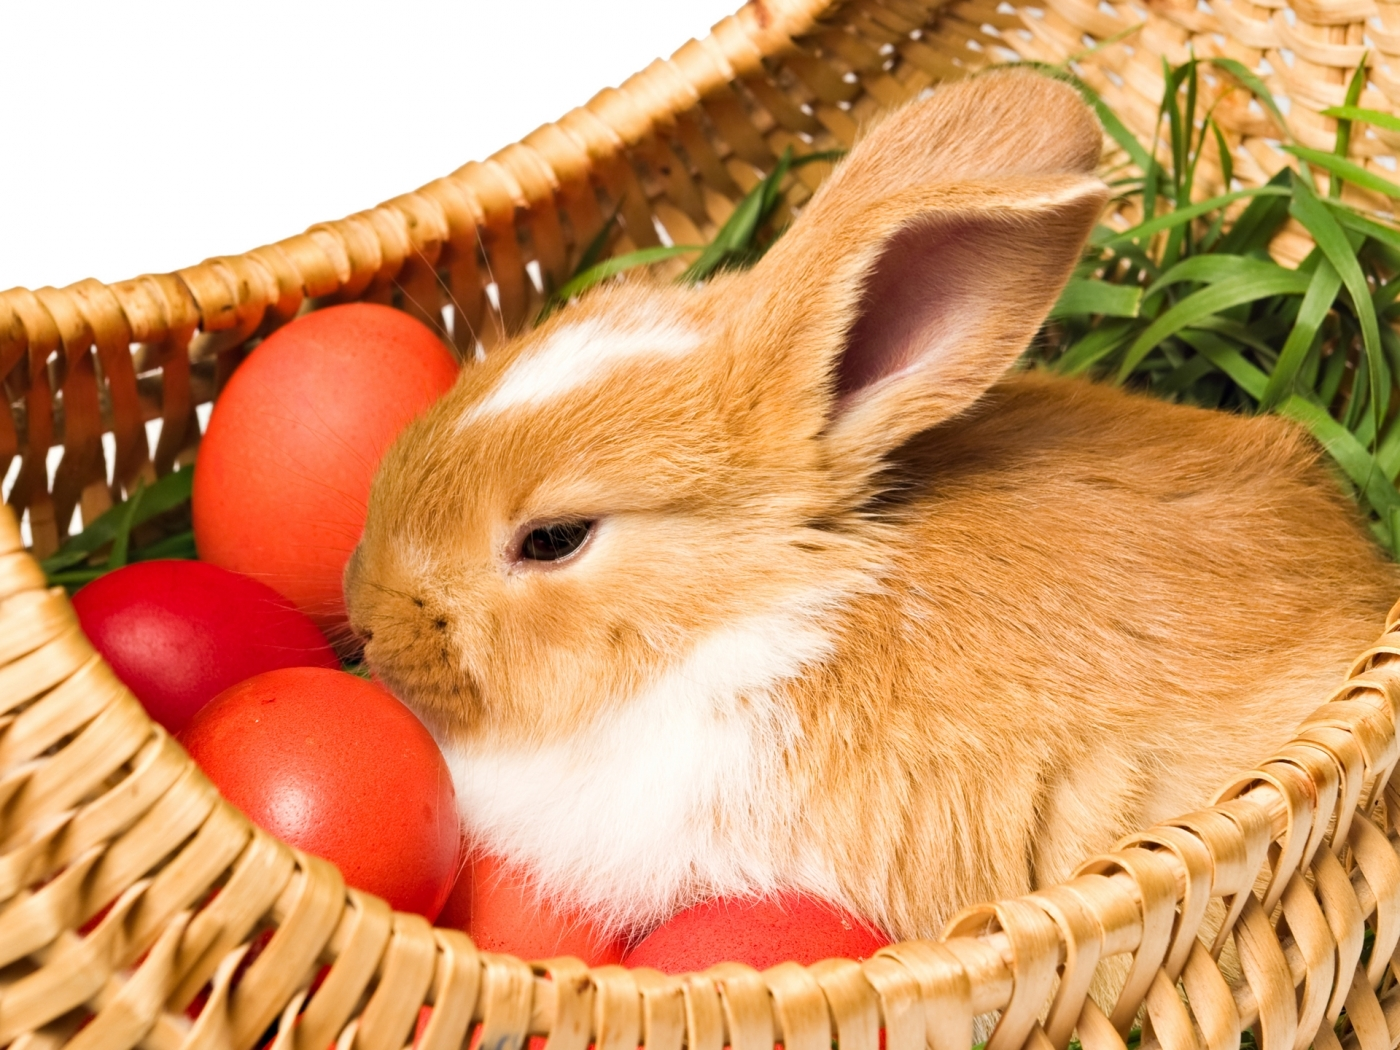 27225 download wallpaper Animals, Rabbits screensavers and pictures for free